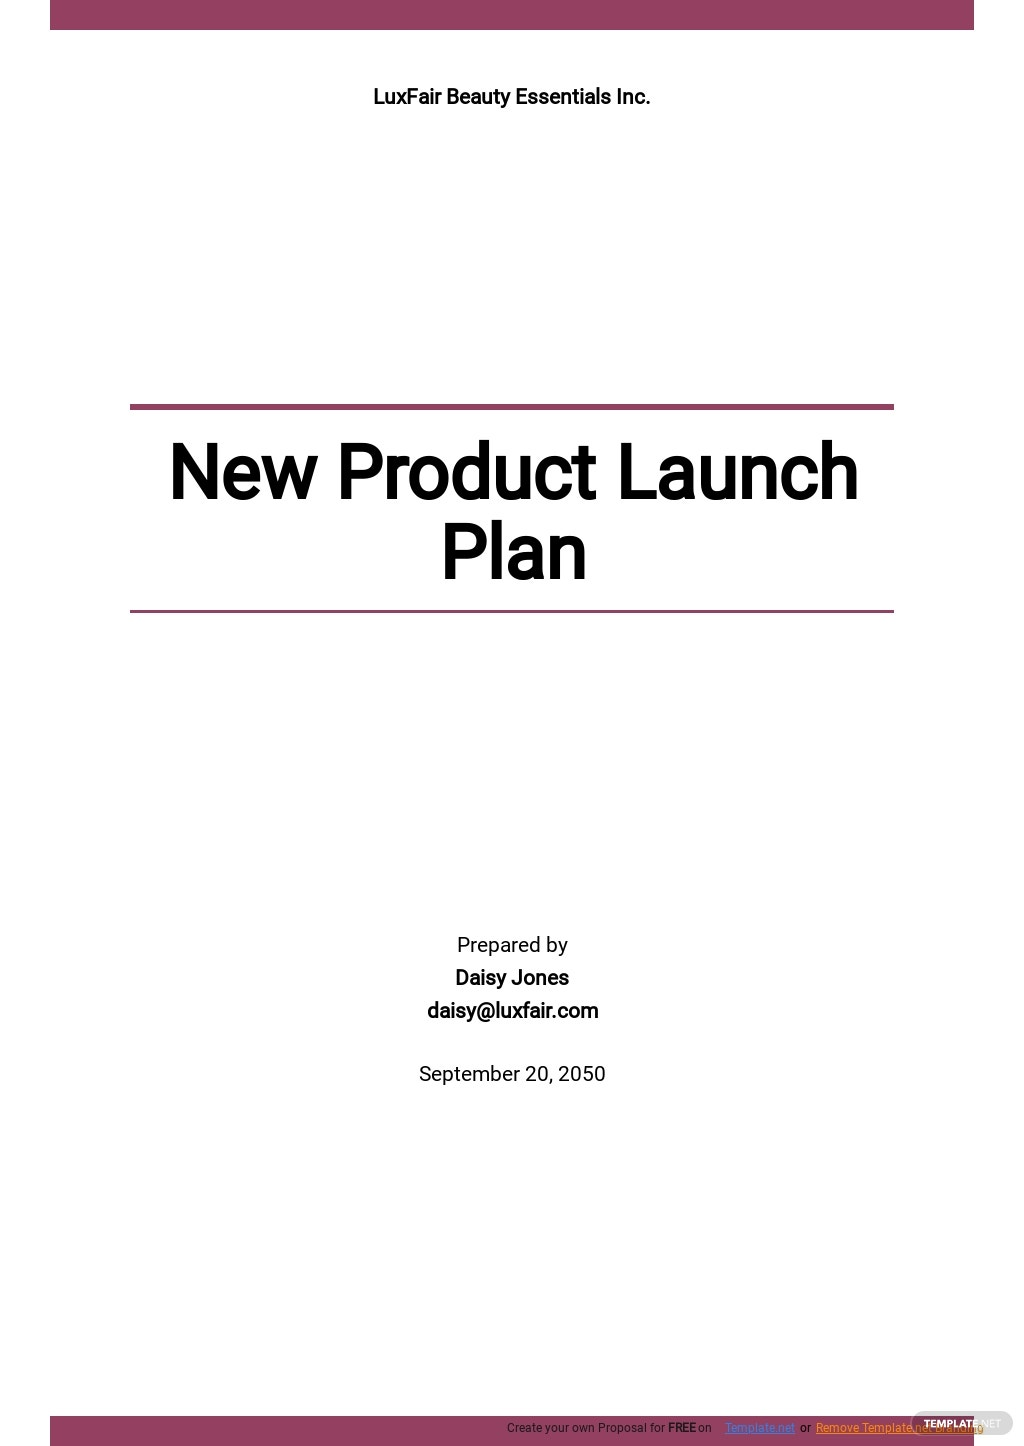 New Product Launch Plan Template.jpe